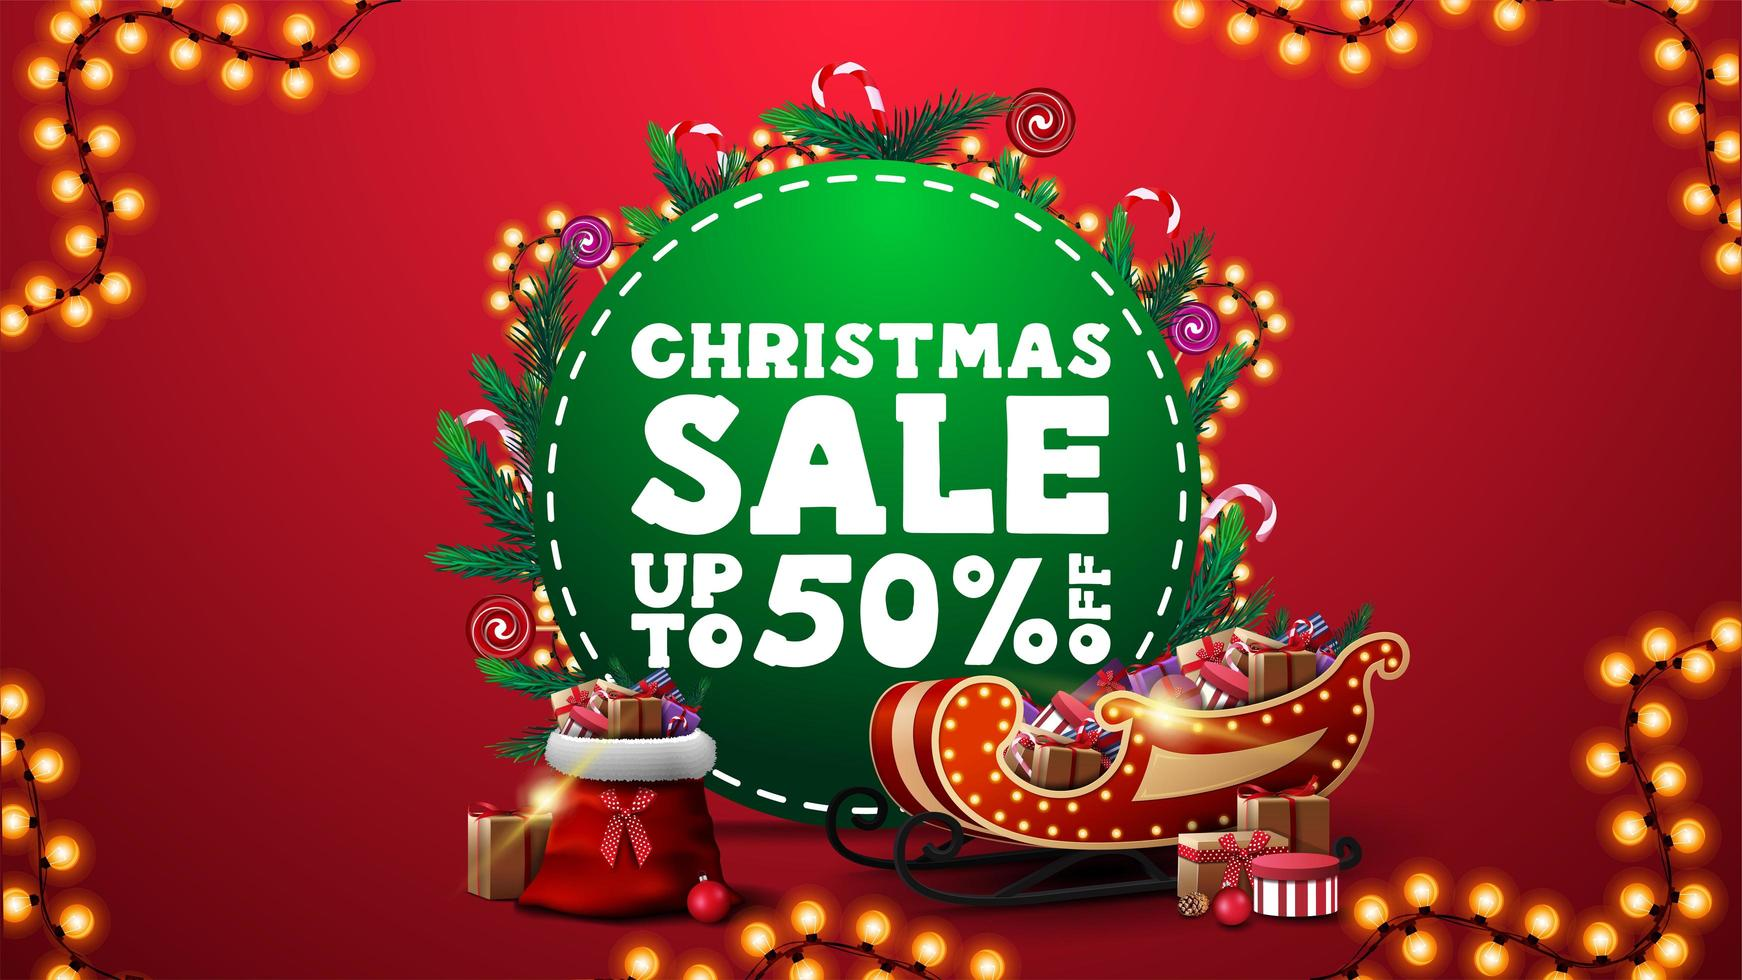 Christmas sale, up to 50 off, vertical red discount banner with green circle with offer, decorated with Christmas tree branches, candies and garlands and Santa Claus sleigh and bag with presents vector